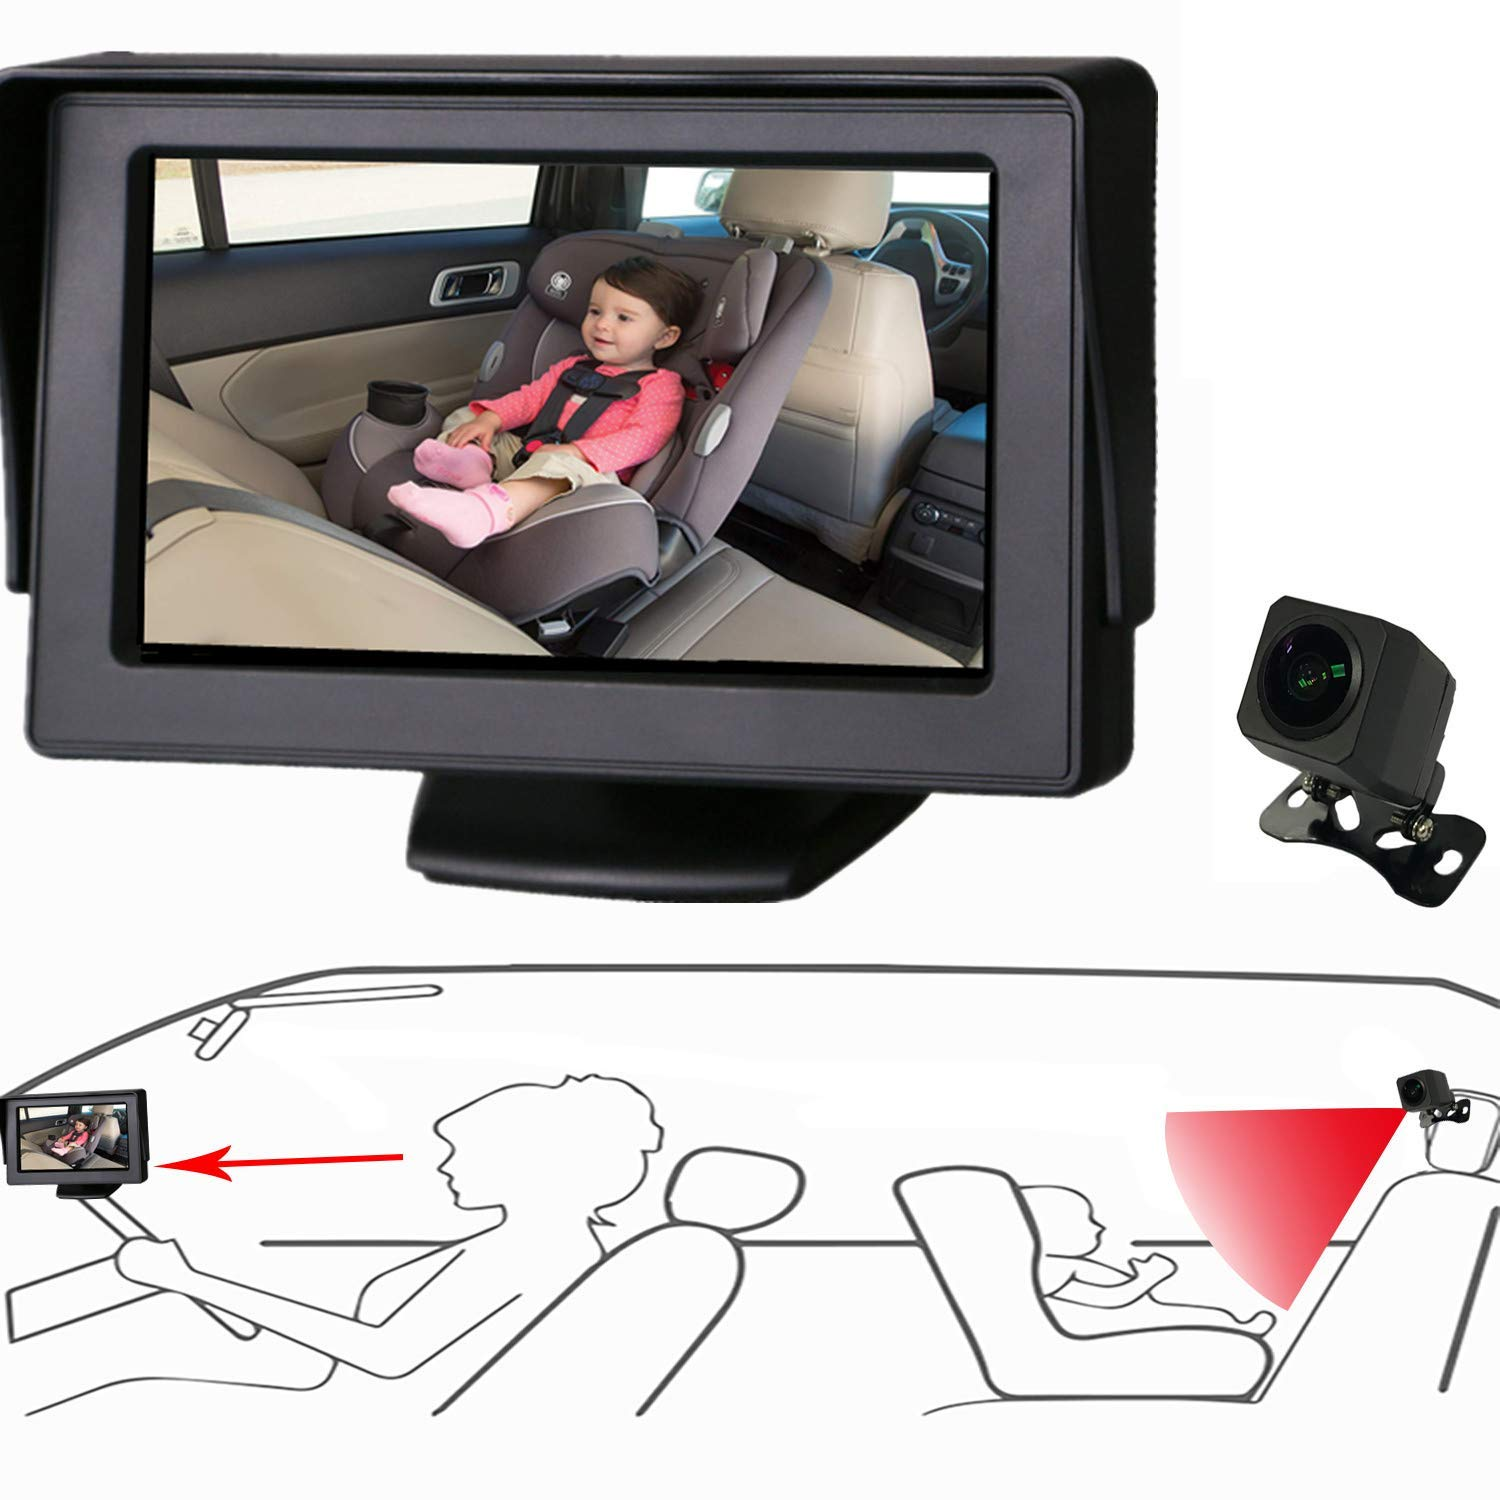 Itomoro Baby Car Mirror View Infant in Rear Facing Seat with Wide Crystal Clear View,Camera Aimed at Baby-Easily to Observe The Babys Every Move